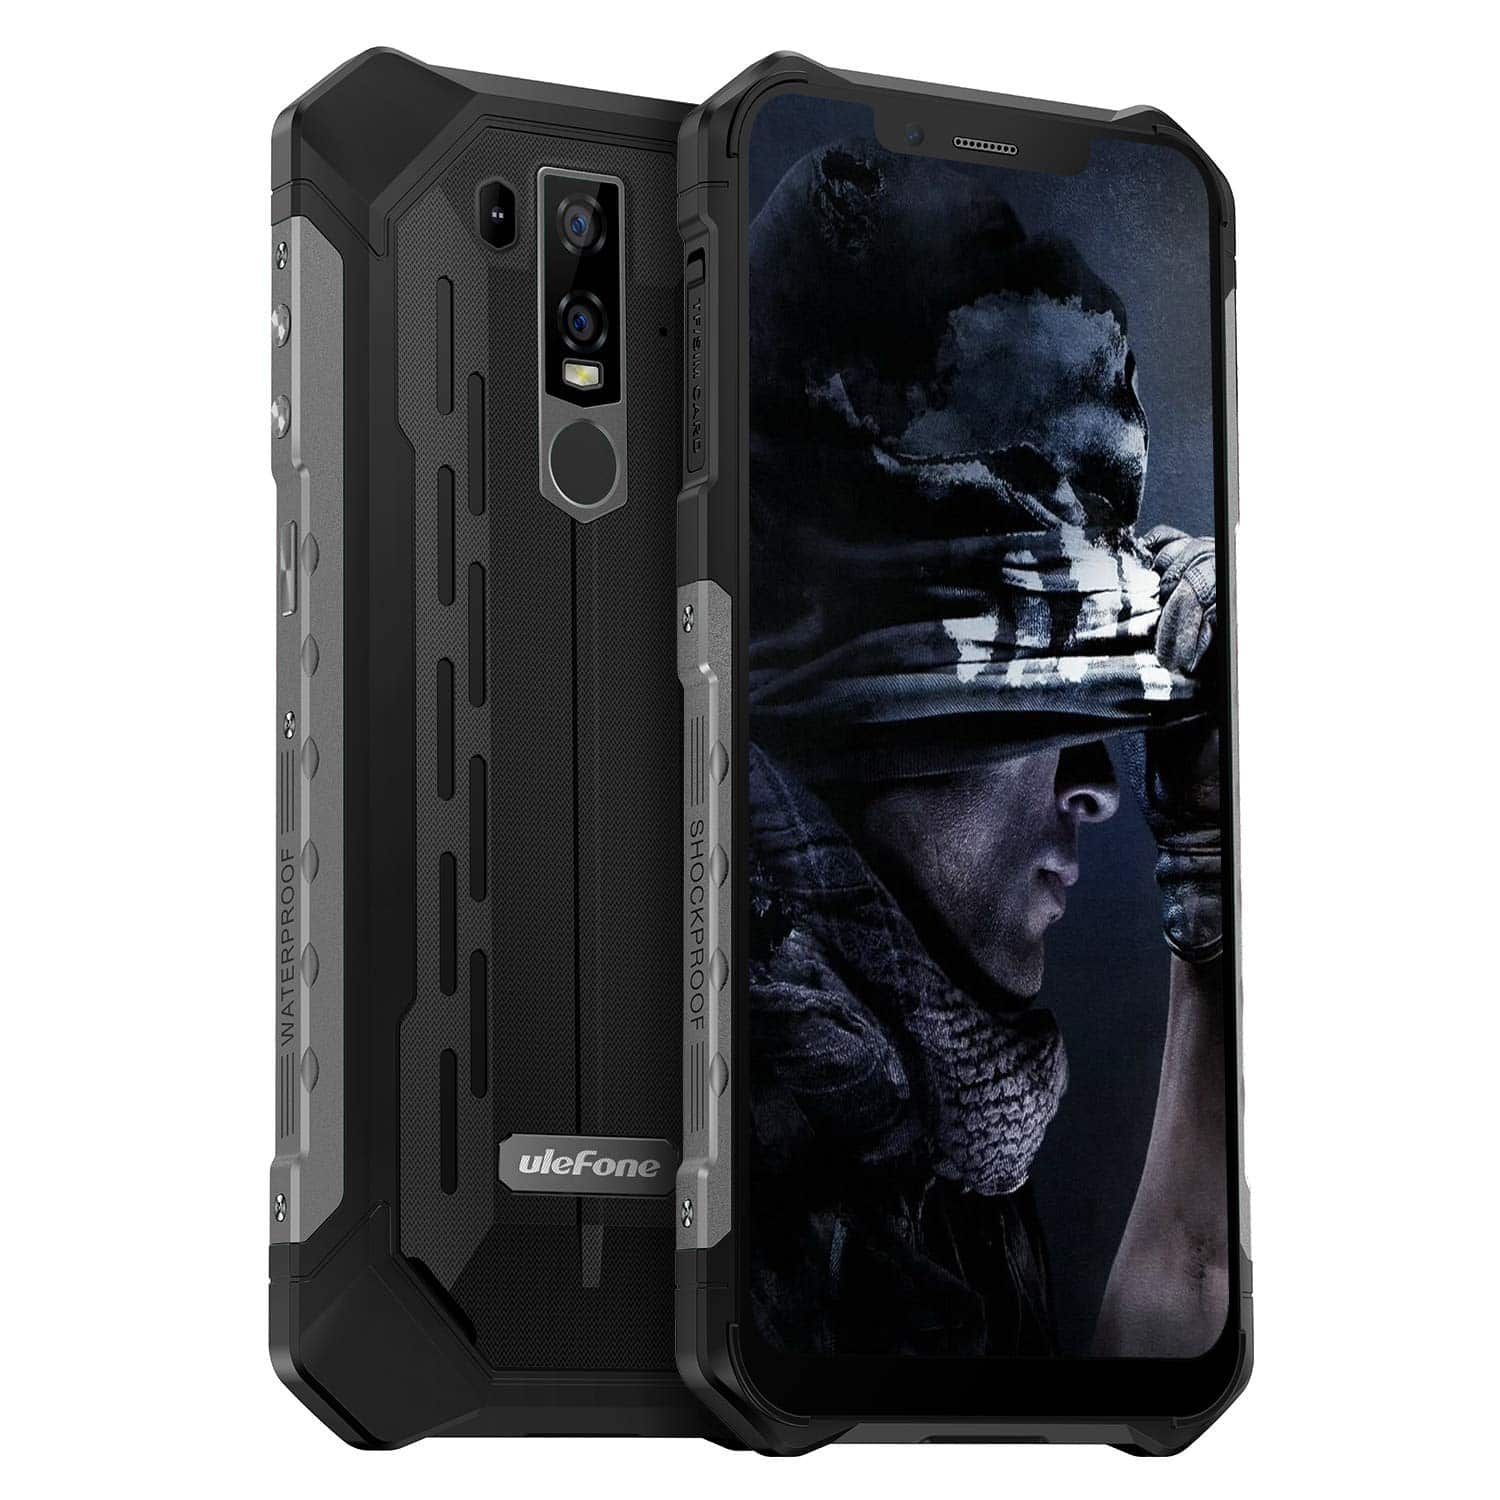 Best Phones for Outdoor Travel - Ulefone Armor 6E